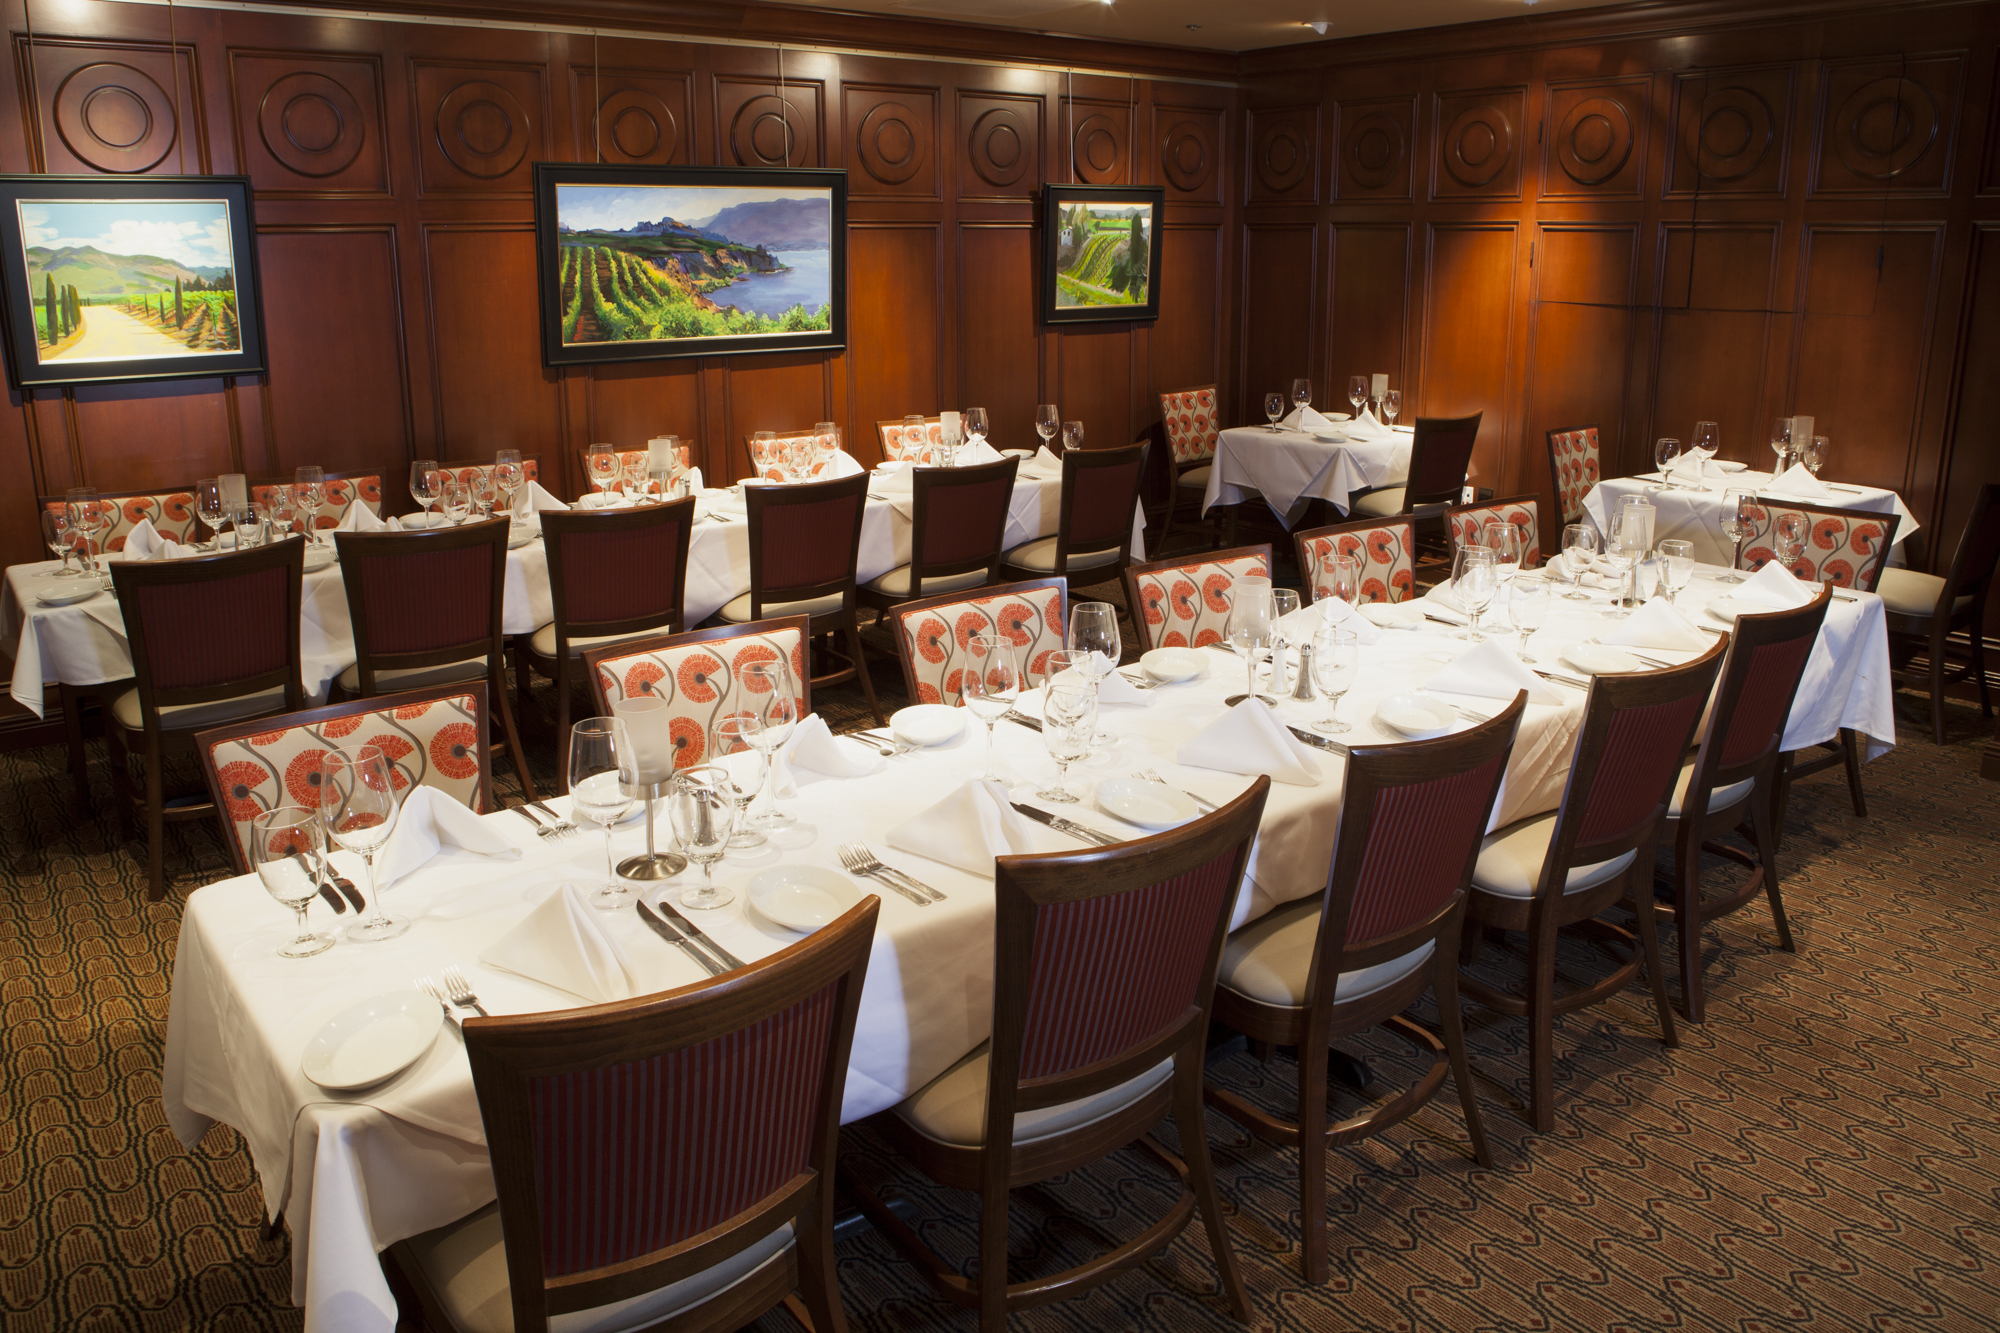 Ruth's Chris Steak House event space in San Francisco, SF Bay Area, San Fran